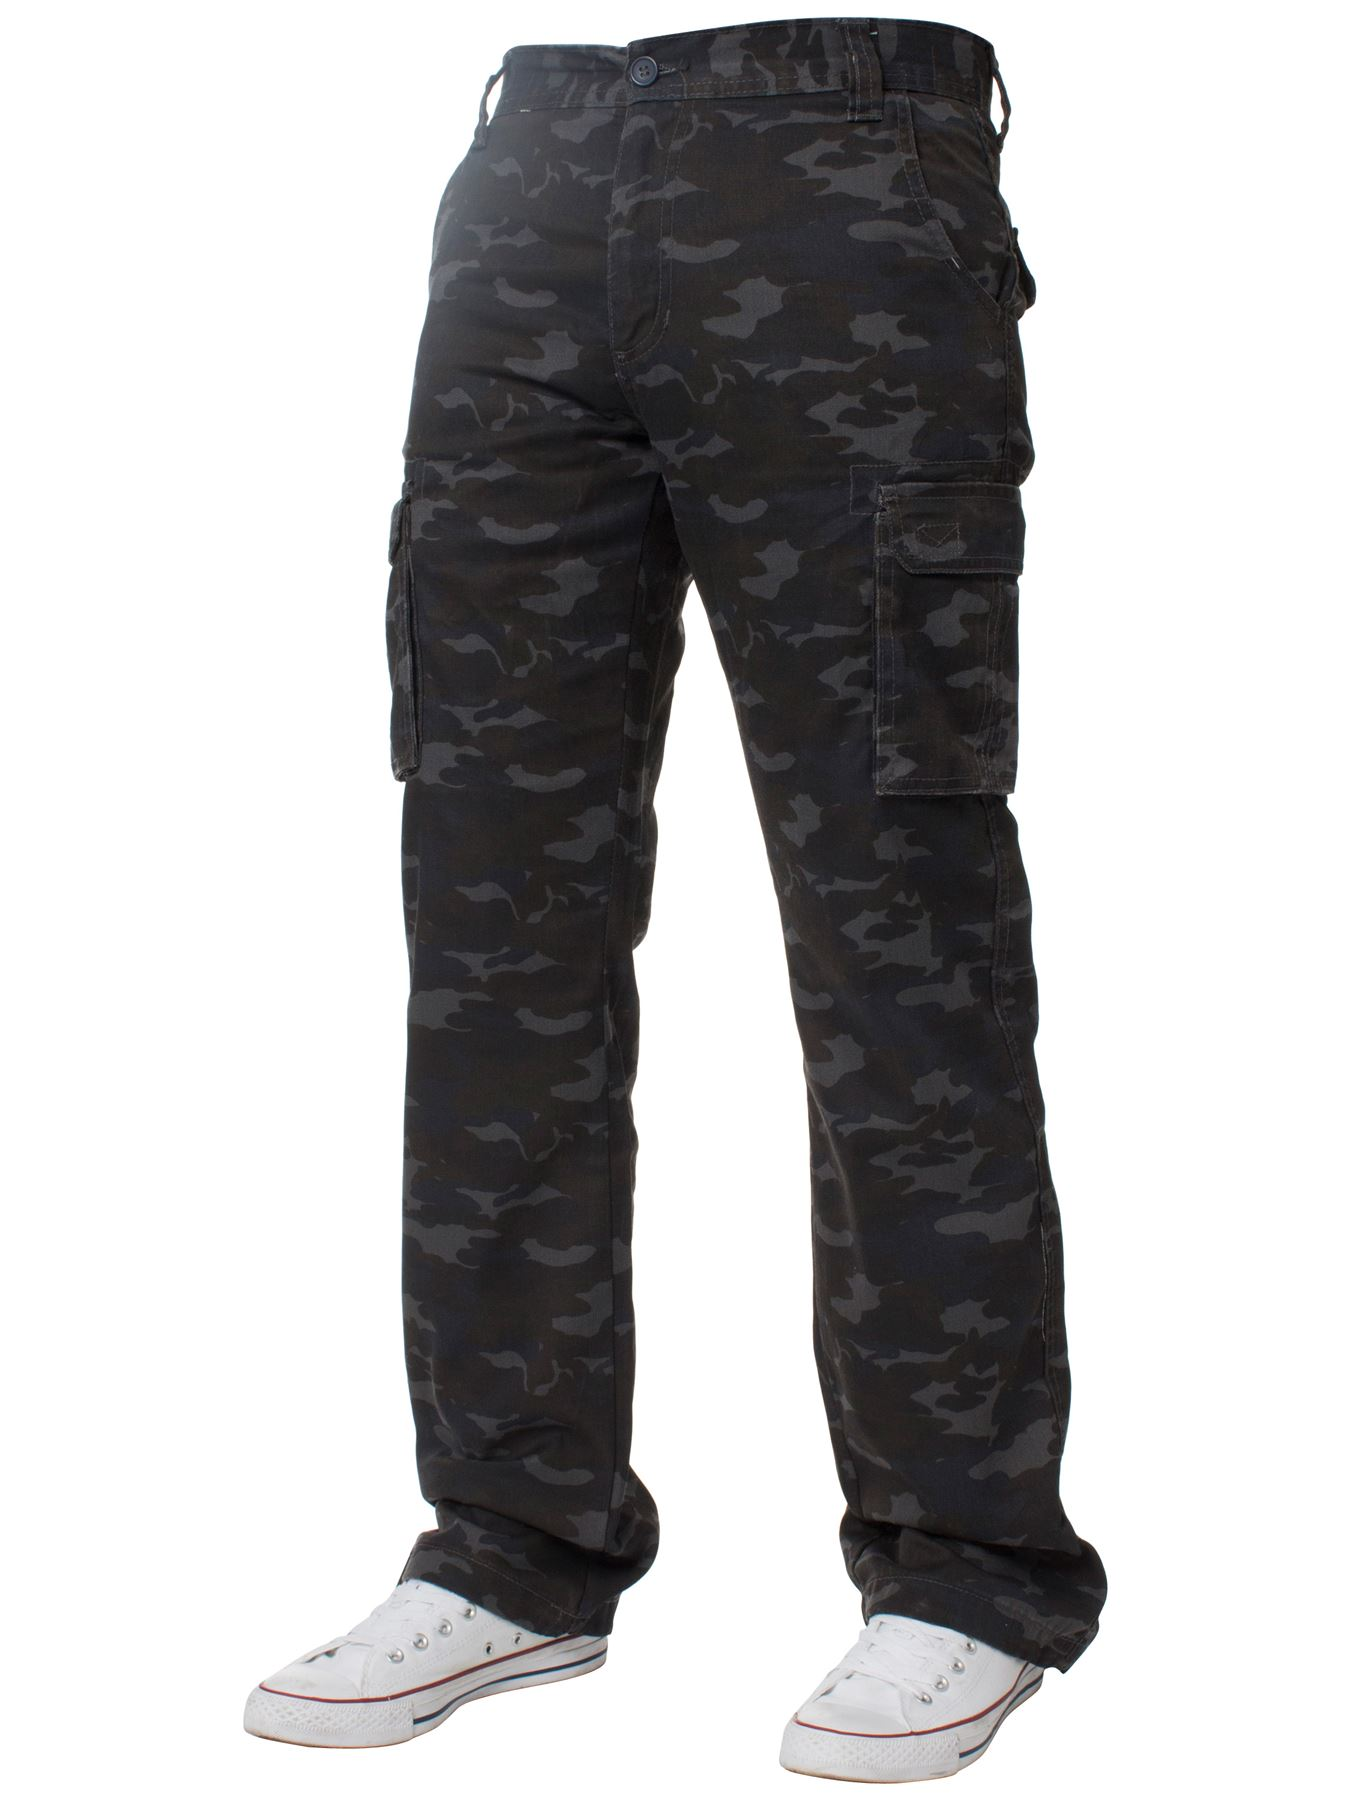 Kruze-Mens-Military-Combat-Trousers-Camouflage-Cargo-Camo-Army-Casual-Work-Pants thumbnail 31